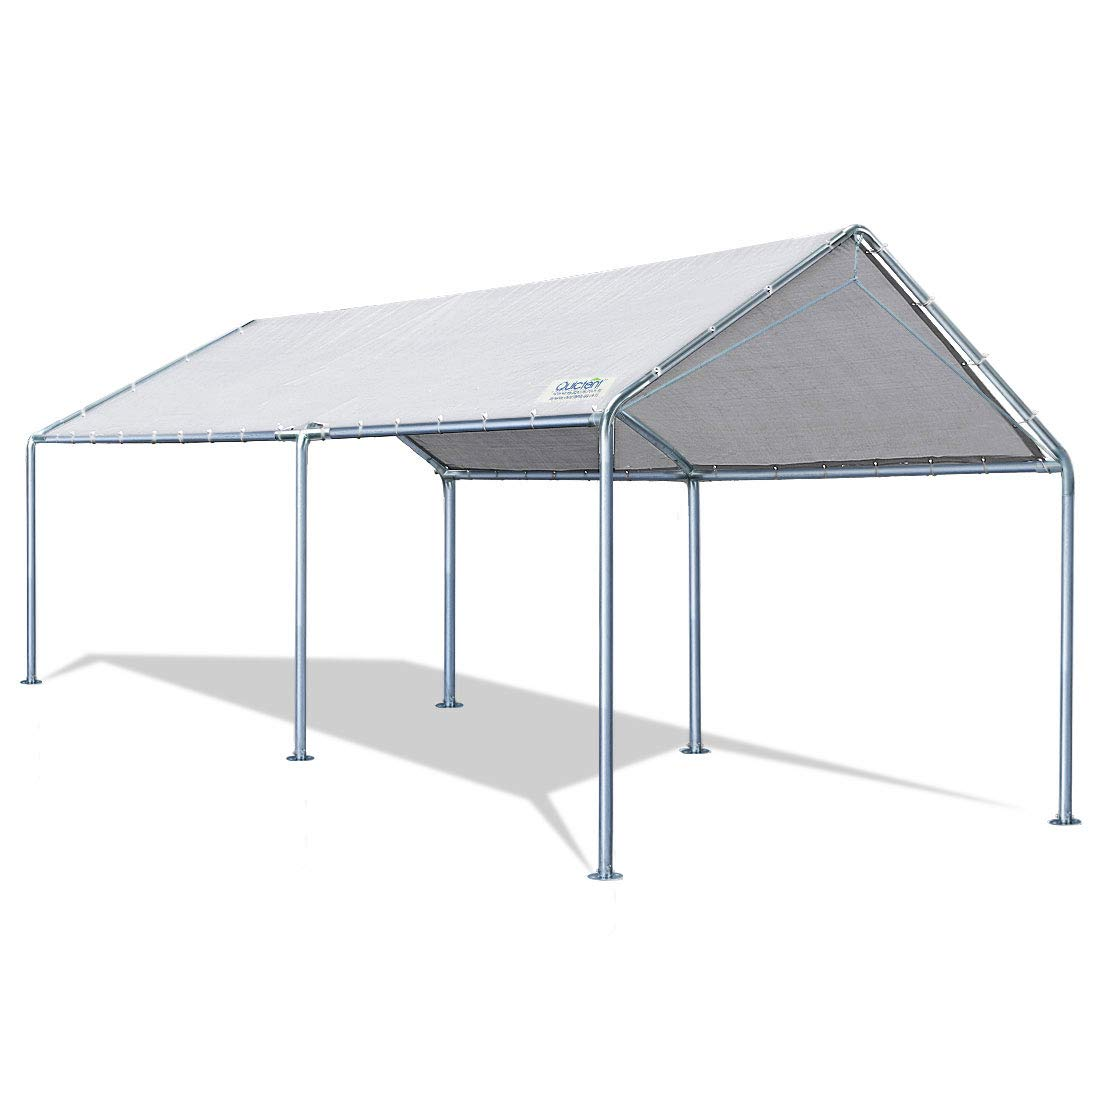 Quictent 10X20'ft Upgraded Heavy Duty Carport Car Canopy Party Tent with 3 Reinforced Steel Cables-Grey by Quictent